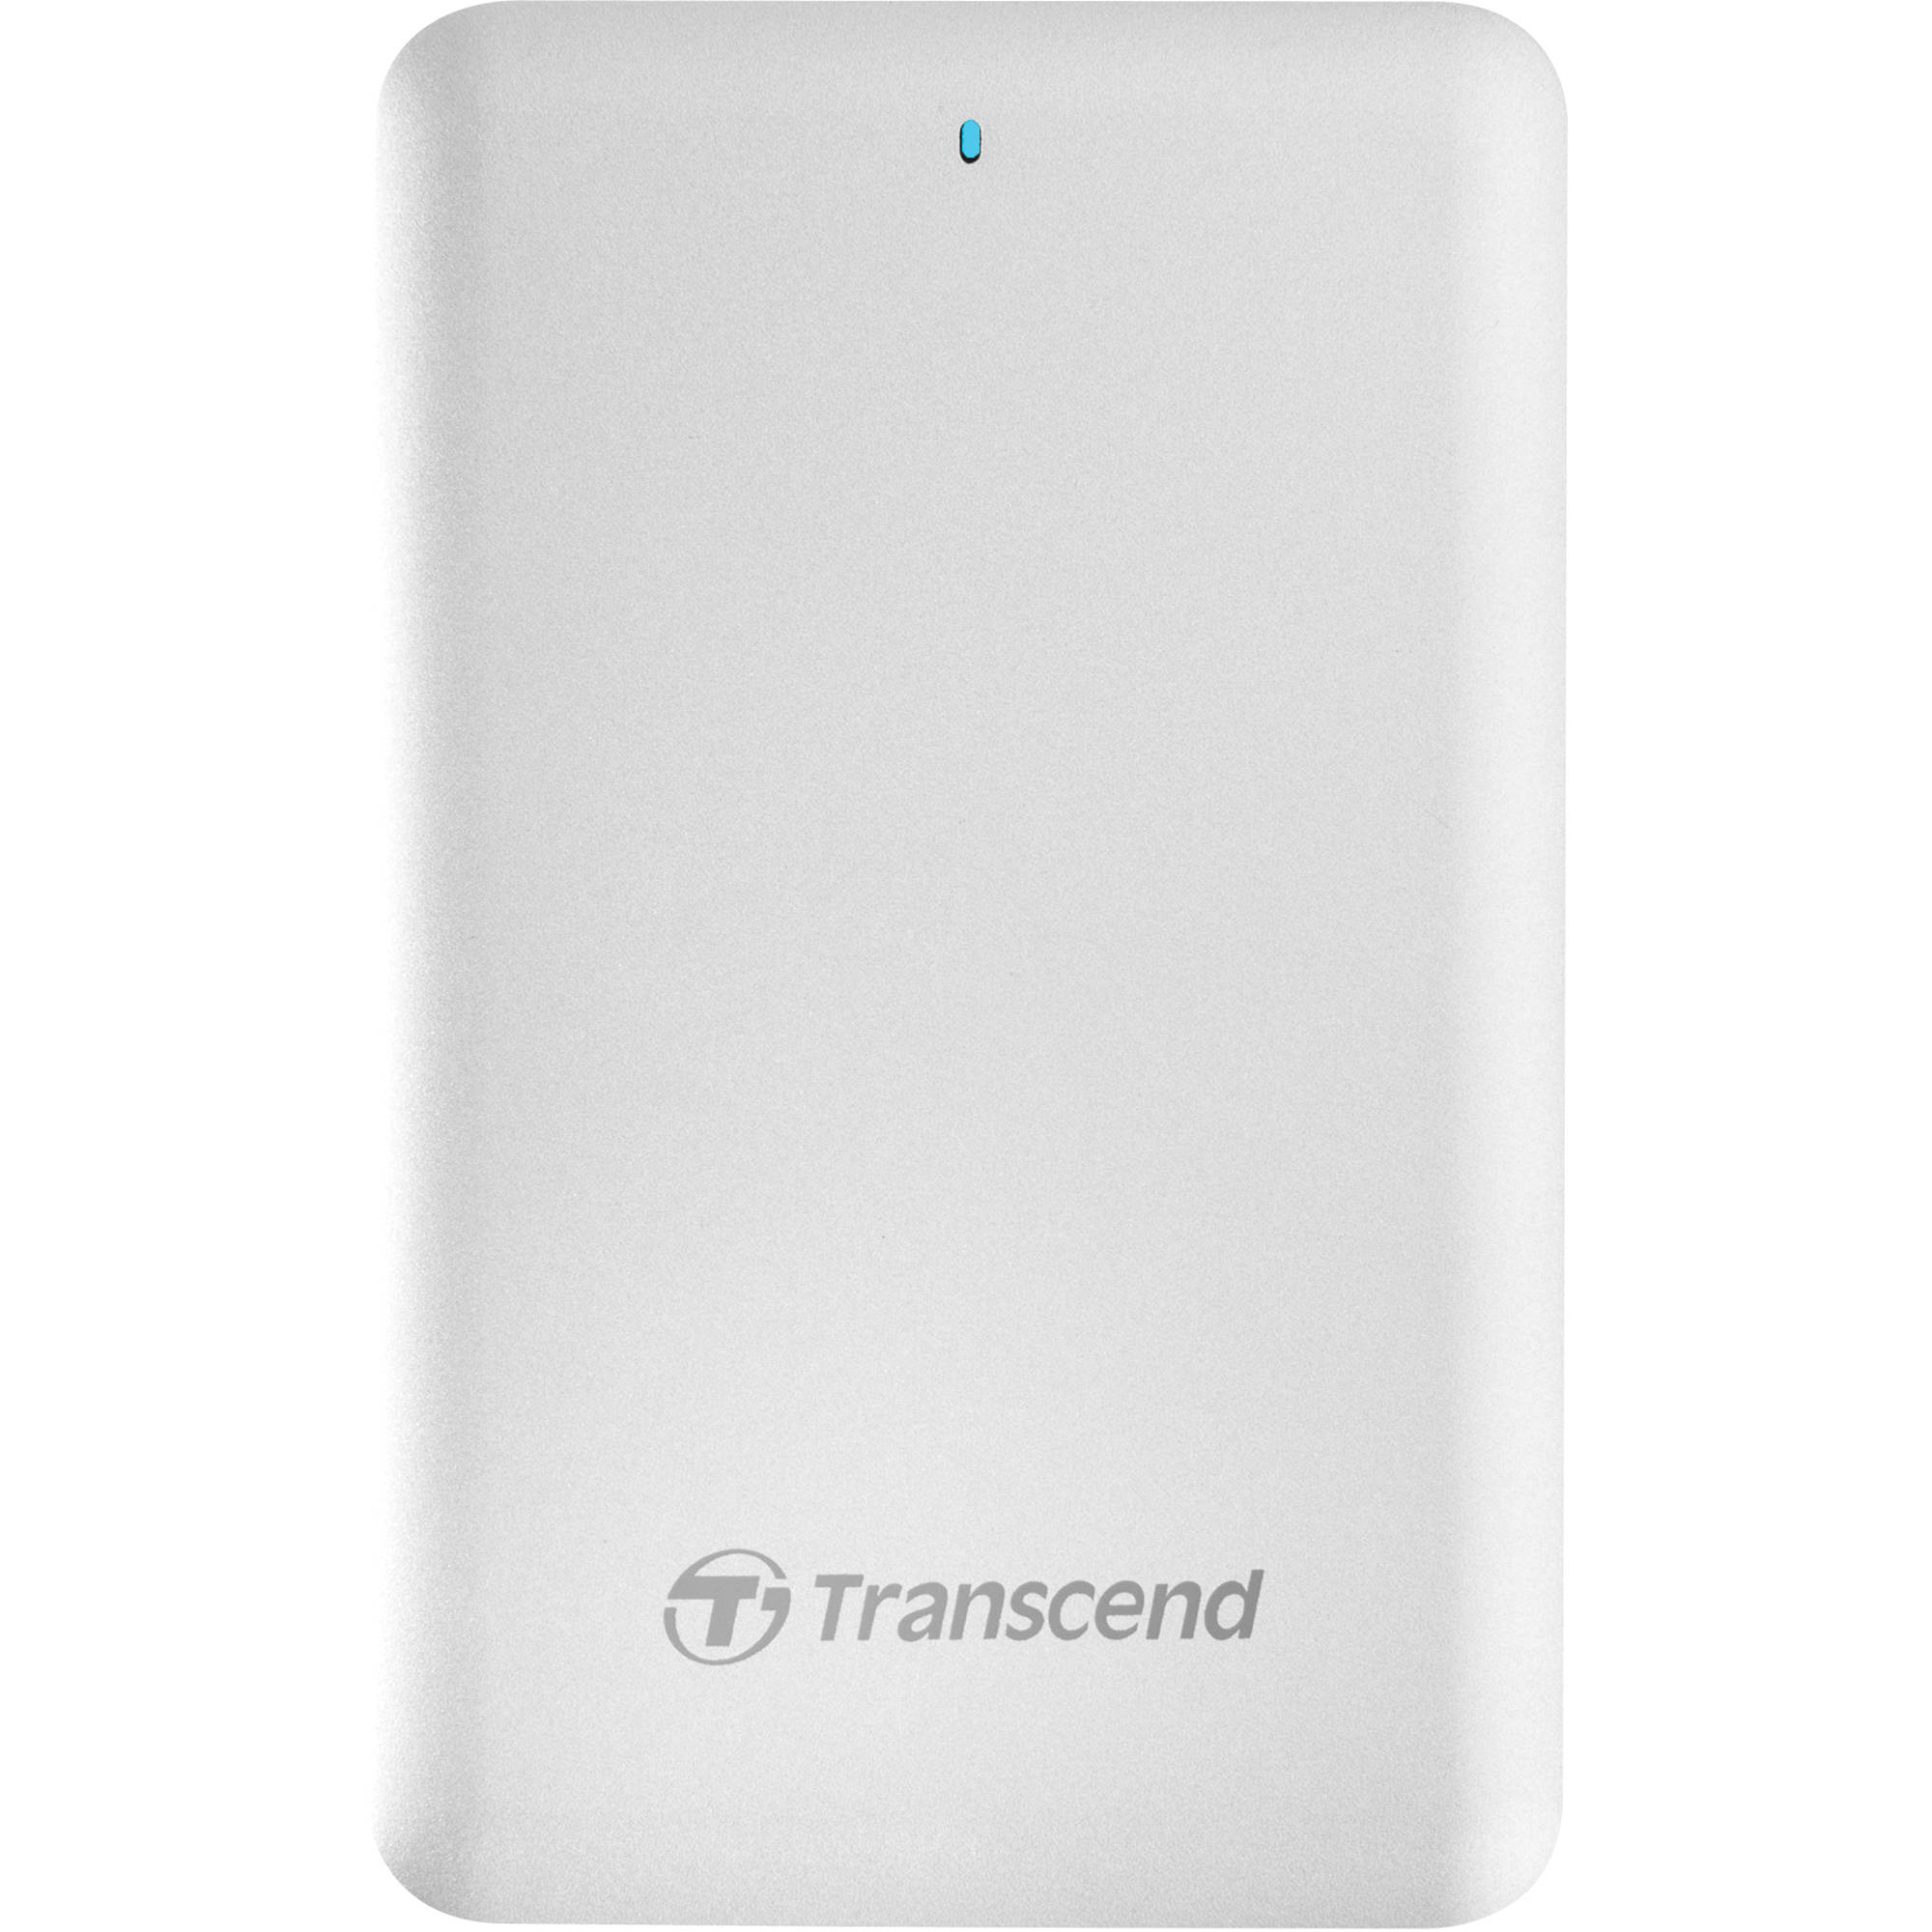 Transcend 1TB StoreJet 500 Portable Solid State Drive for Mac